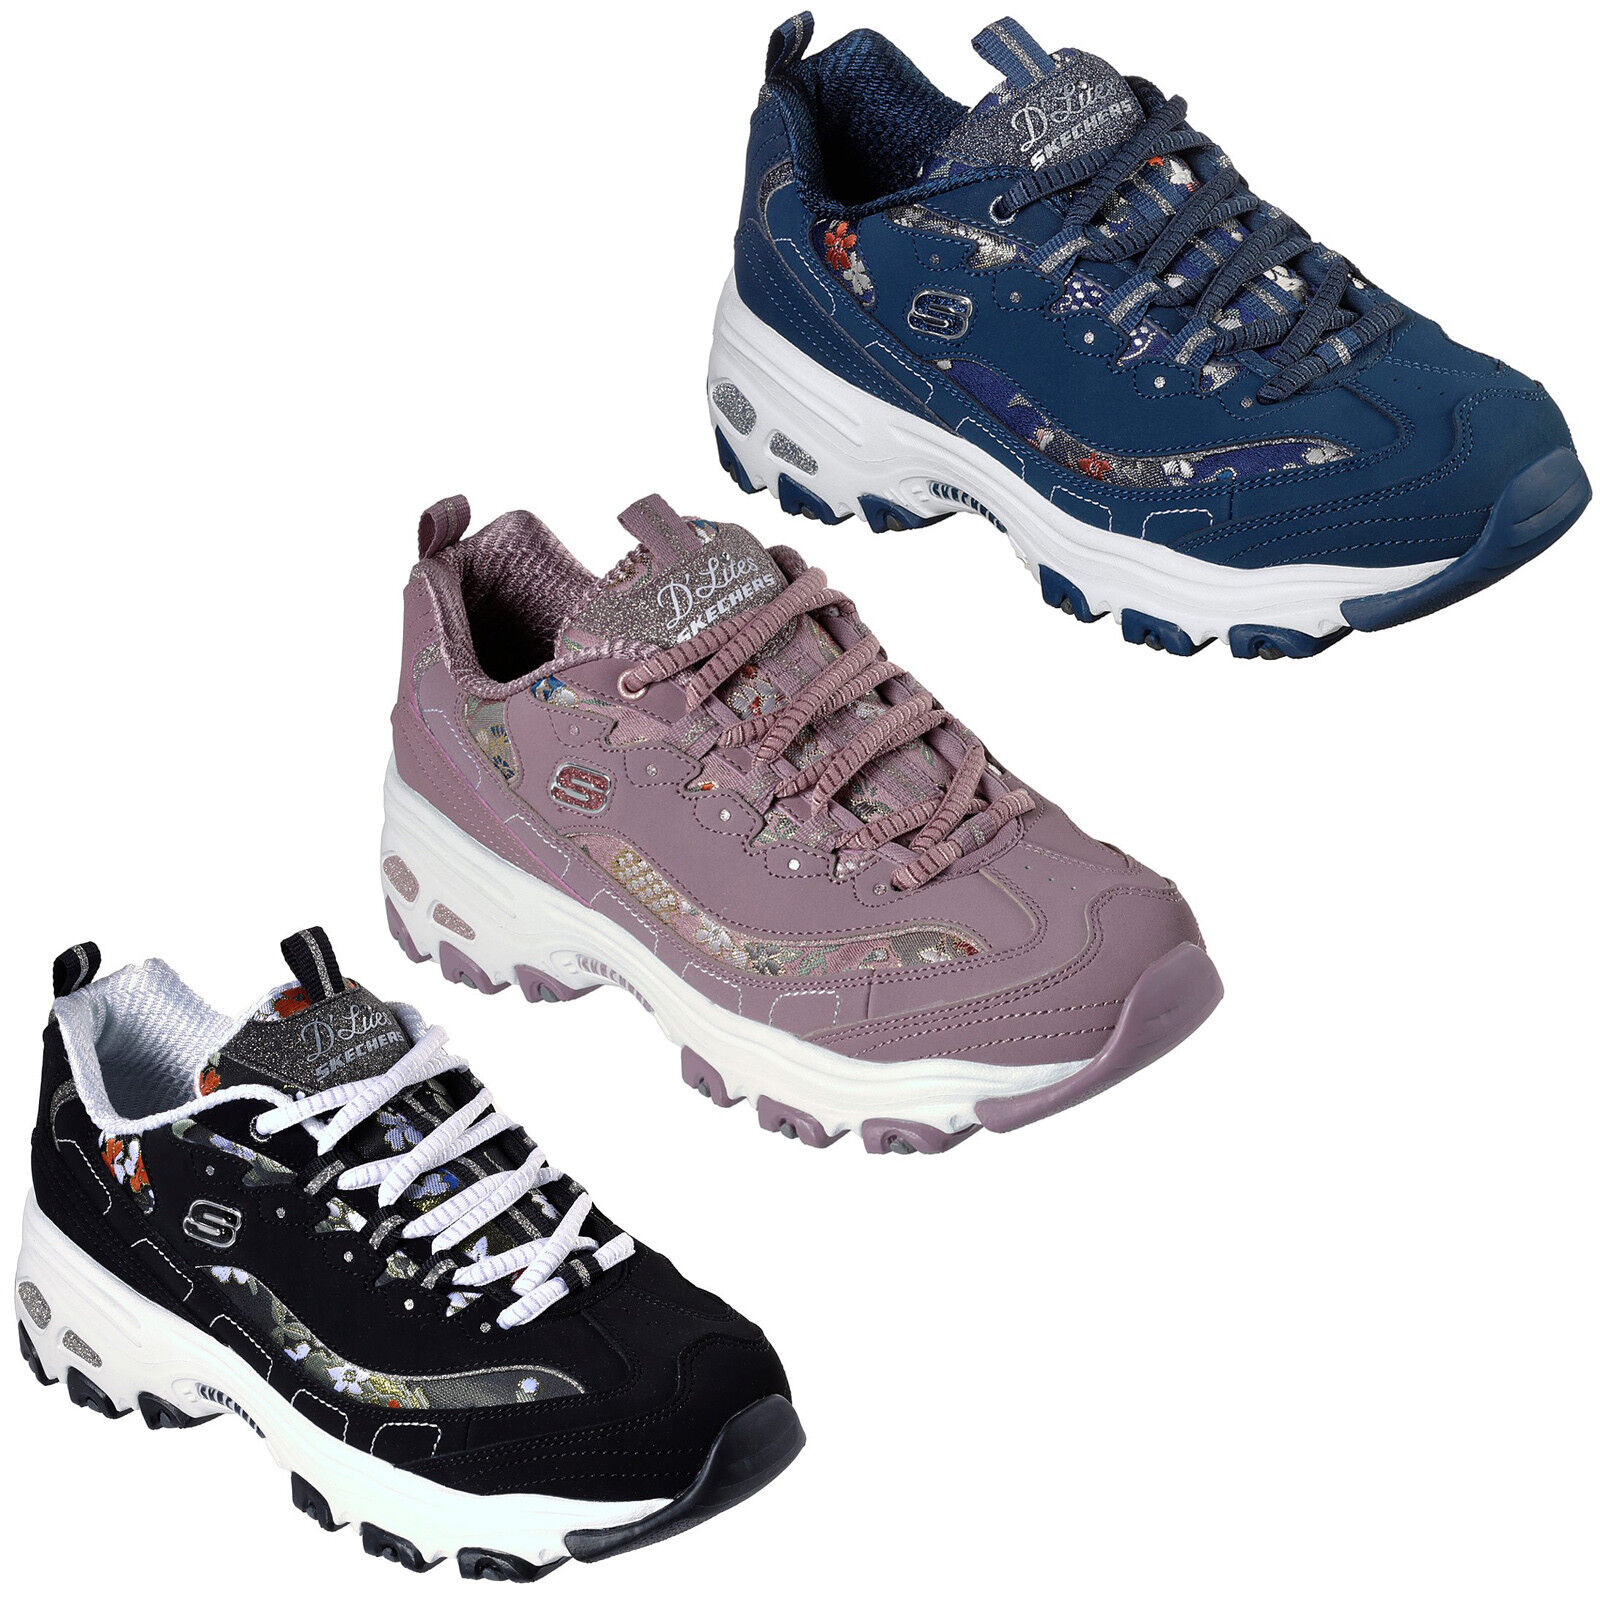 Skechers D'Lites - Floral Days Trainers Memory Foam Chunky Schuhes Damenschuhe 13082